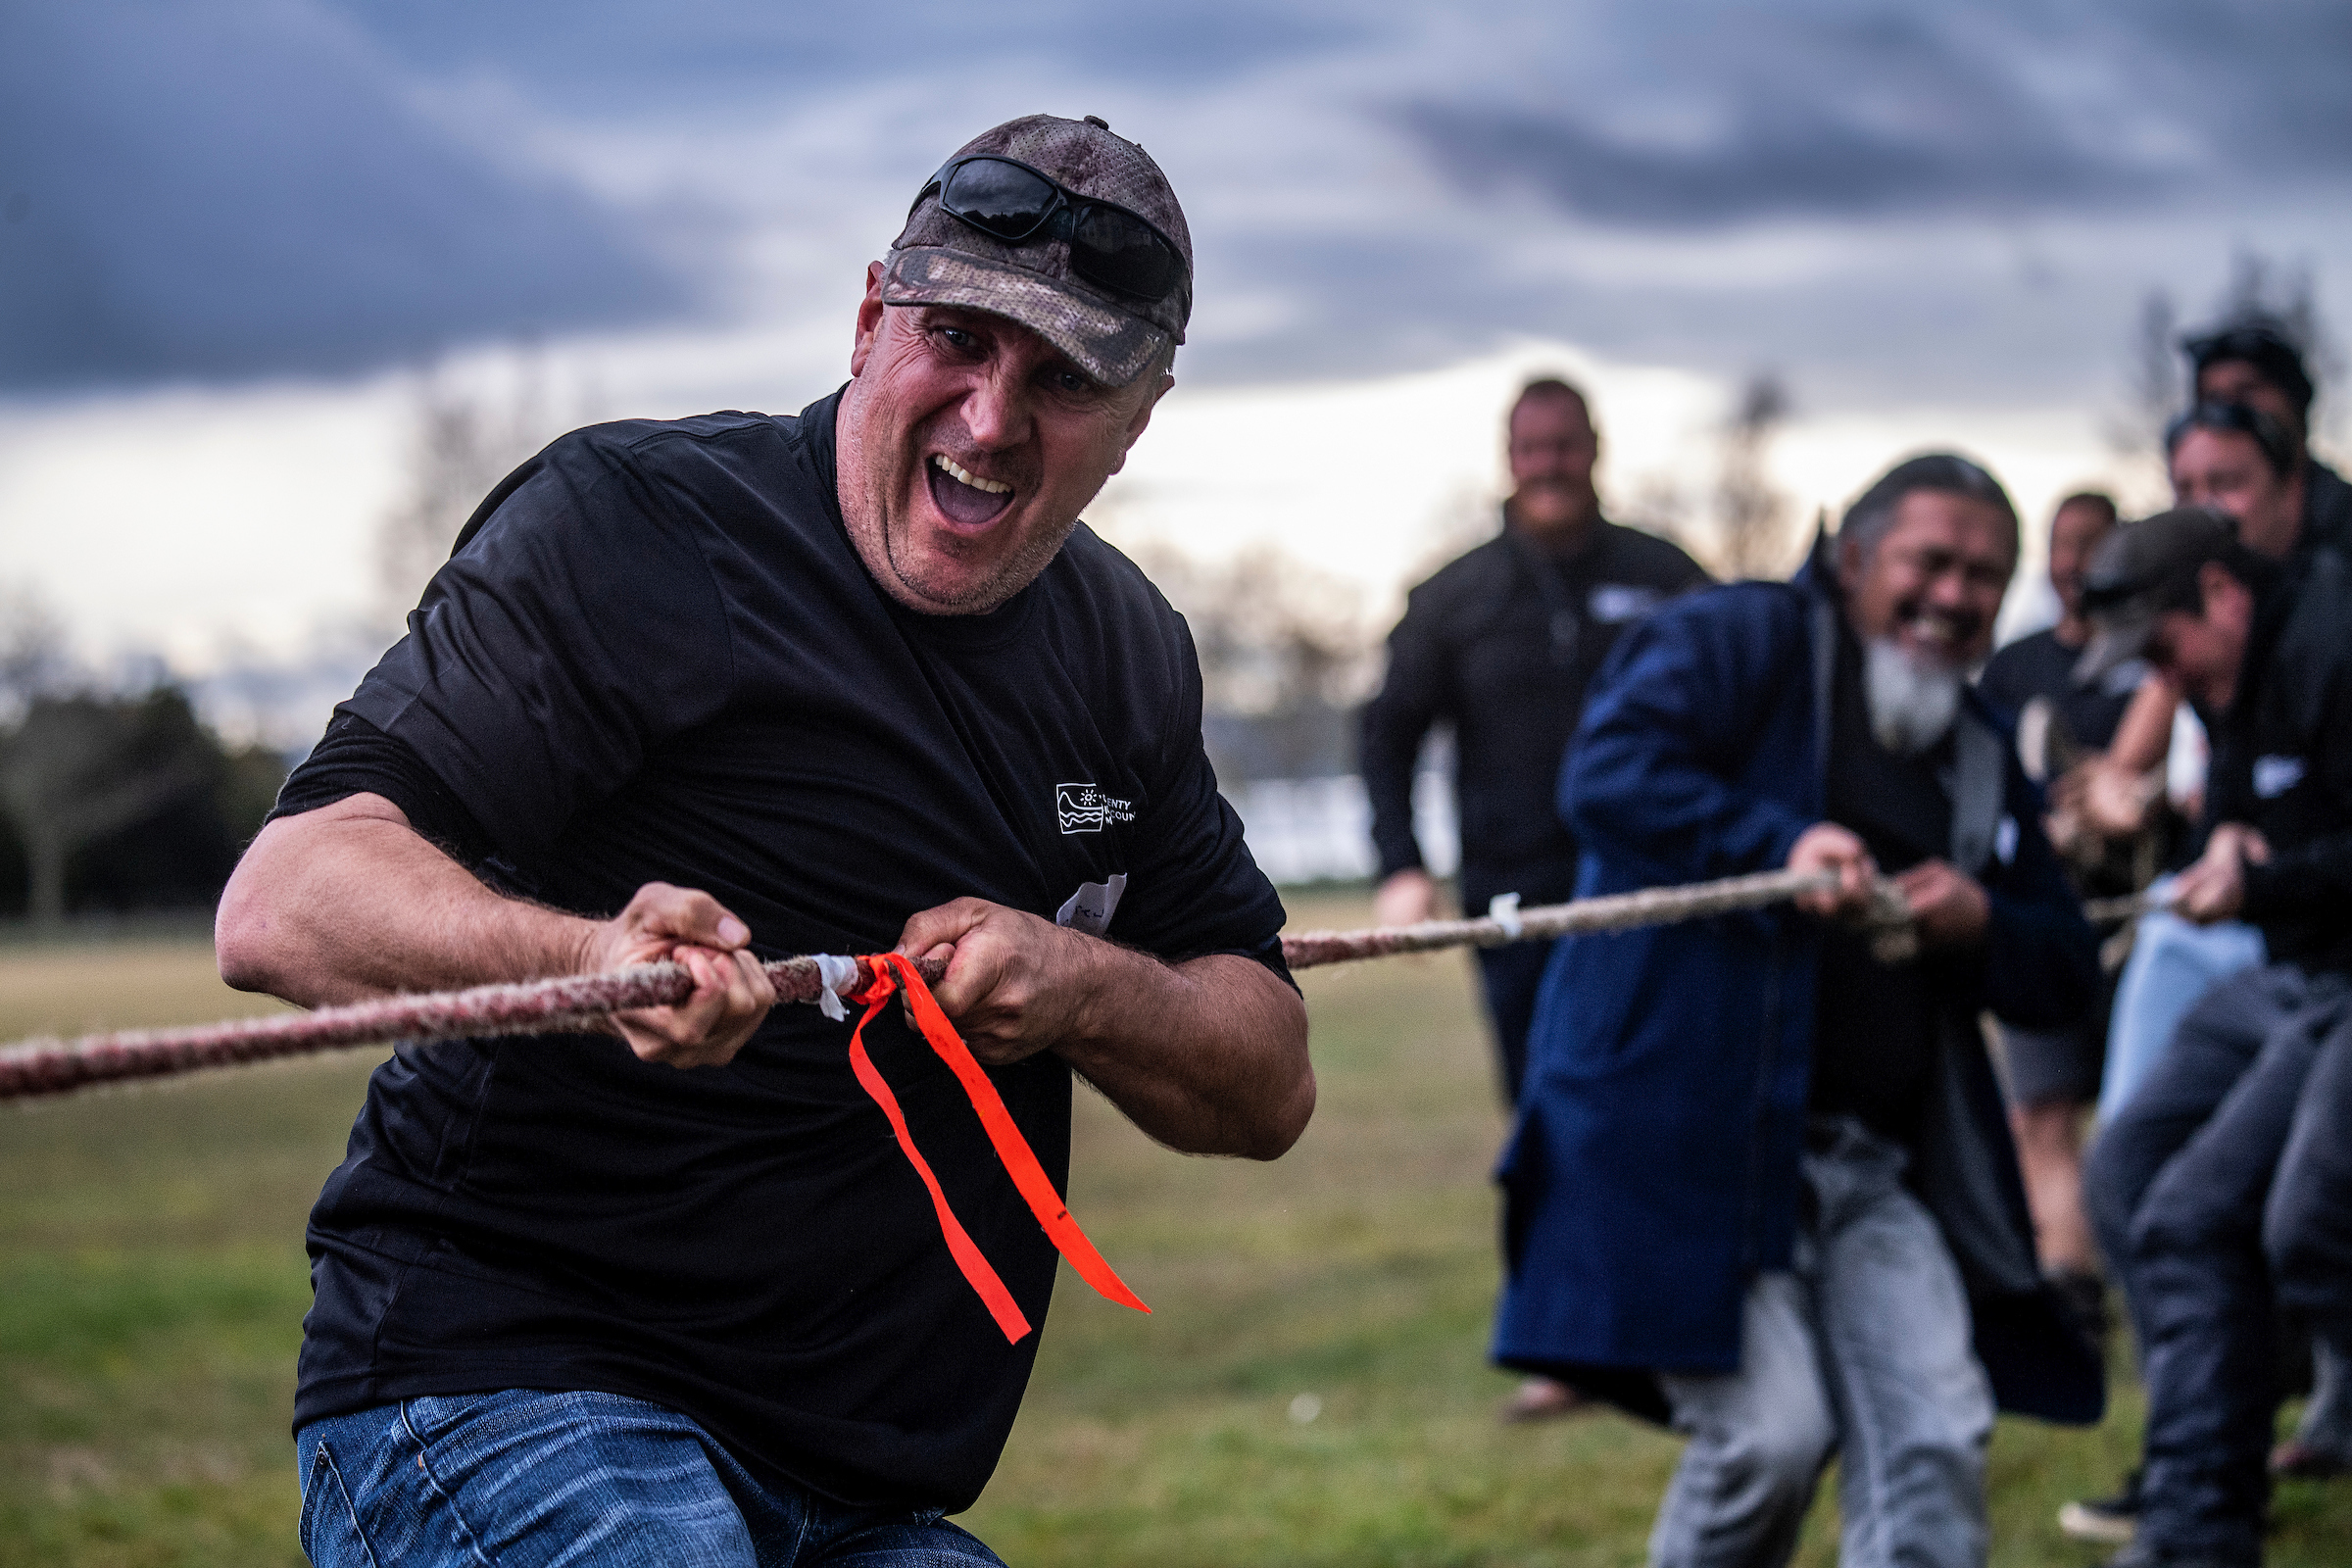 Bay of Plenty staff tug of war.